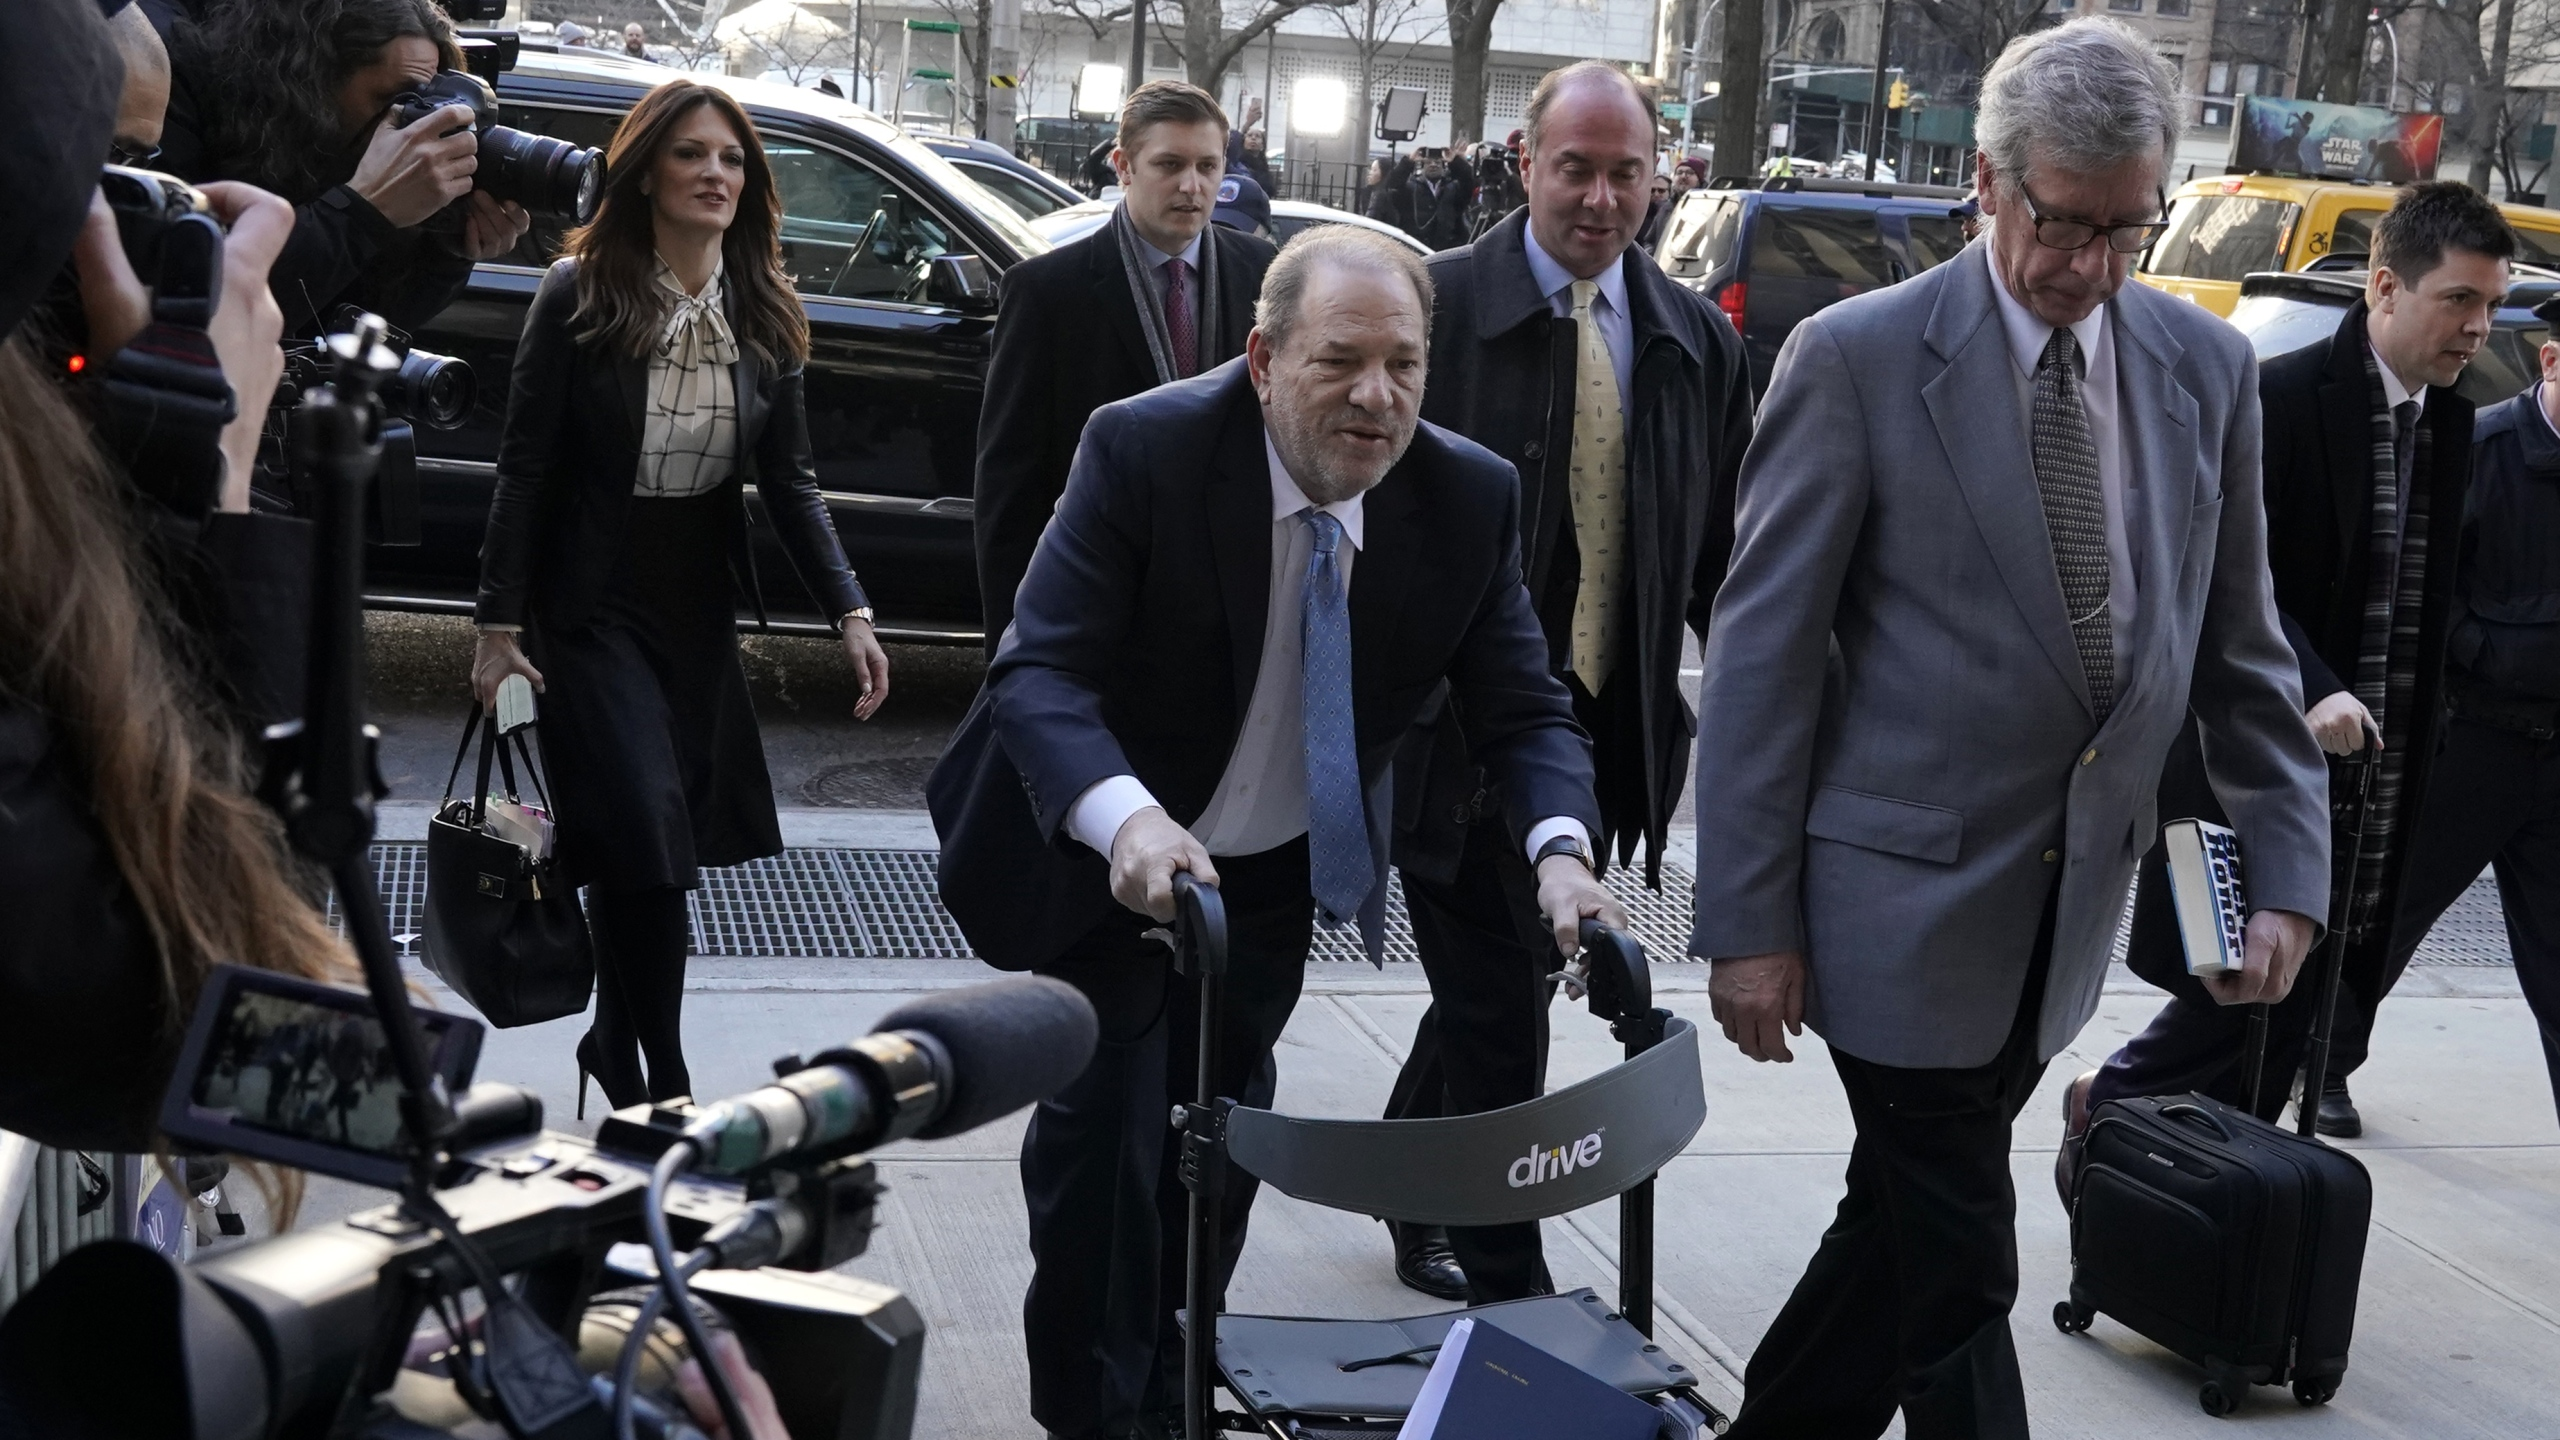 Harvey Weinstein arrives at the Manhattan Criminal Court on Feb. 24, 2020 in New York City. (TIMOTHY A. CLARY/AFP via Getty Images)